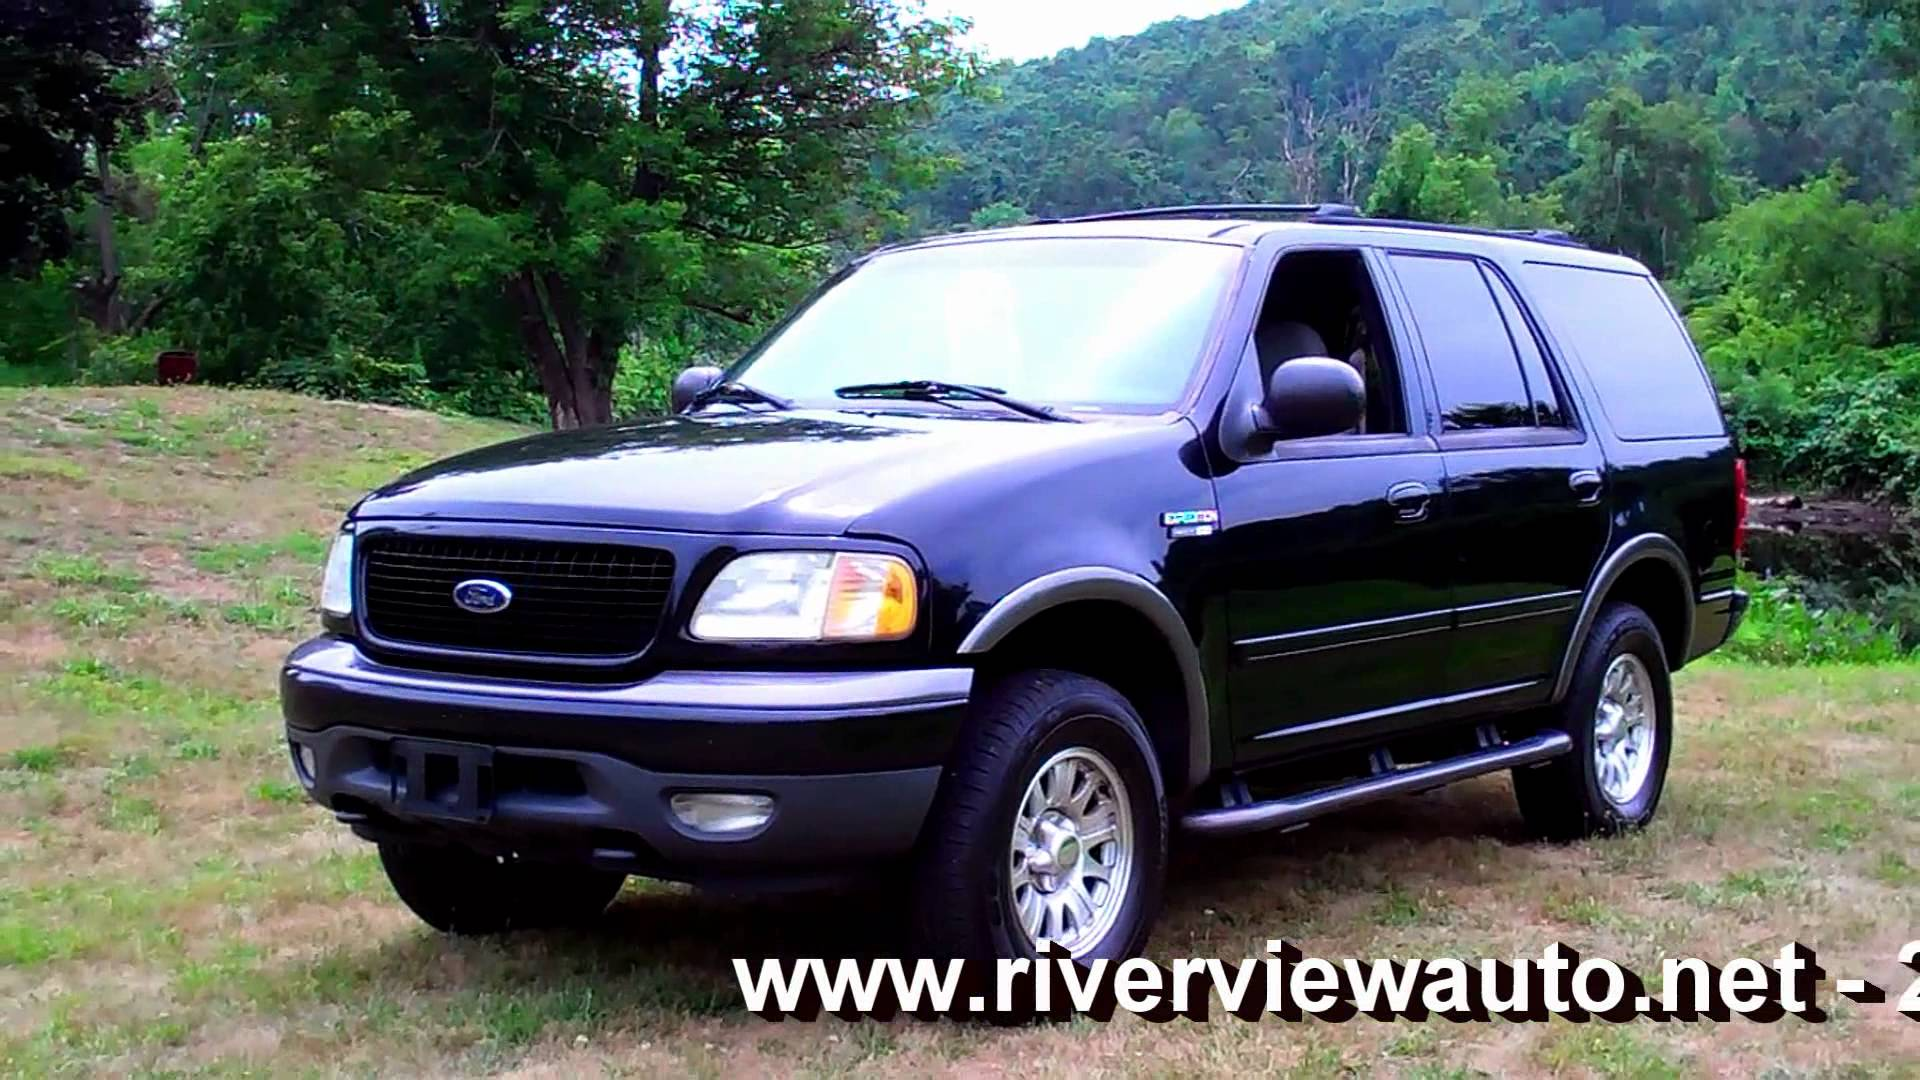 2002 Ford Expedition #7